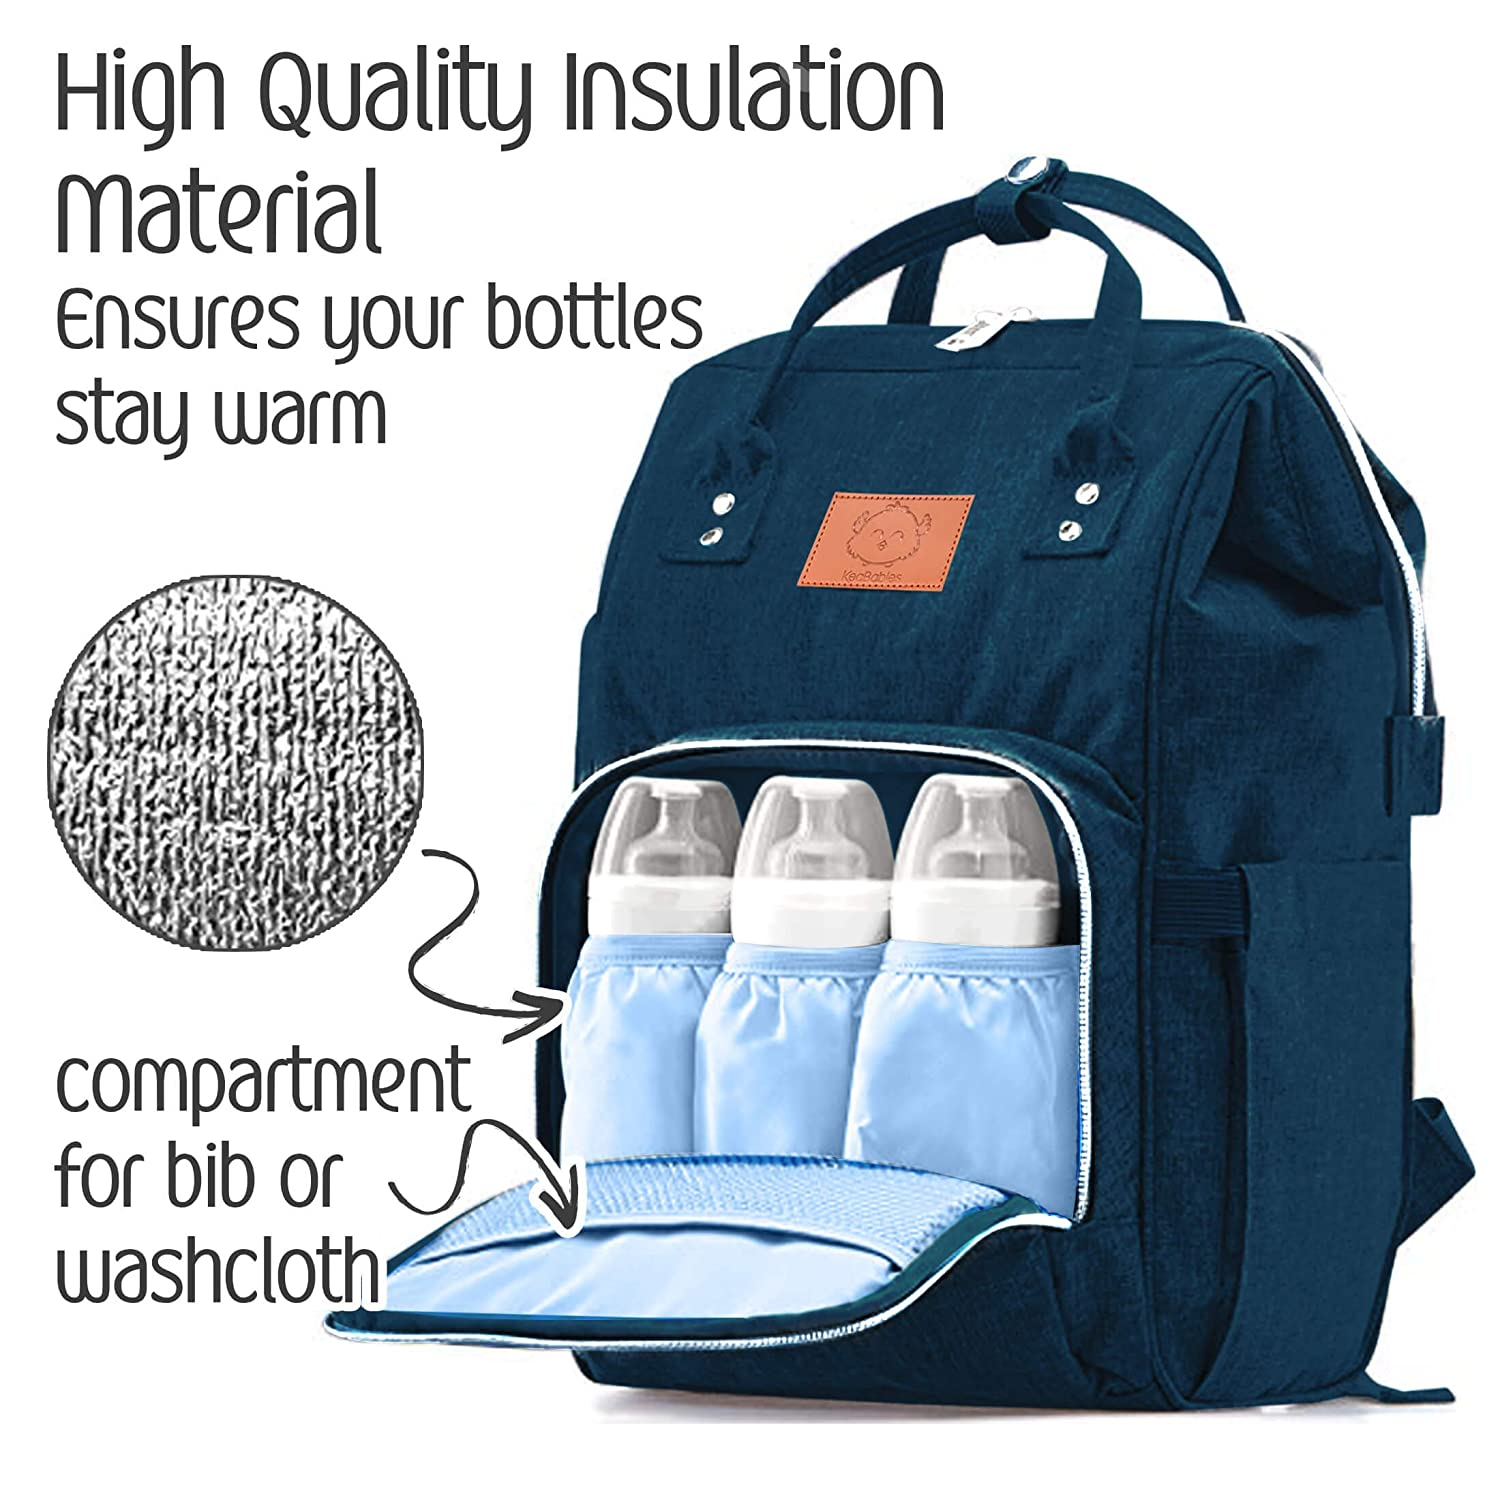 Durable Stylish KeaBabies Diaper Bag Backpack Mystic Gray Dad Men Women Multi-Function Waterproof Travel Baby Bags for Mom Large Maternity Nappy Bags for Girls /& Boys Diaper Mat Included